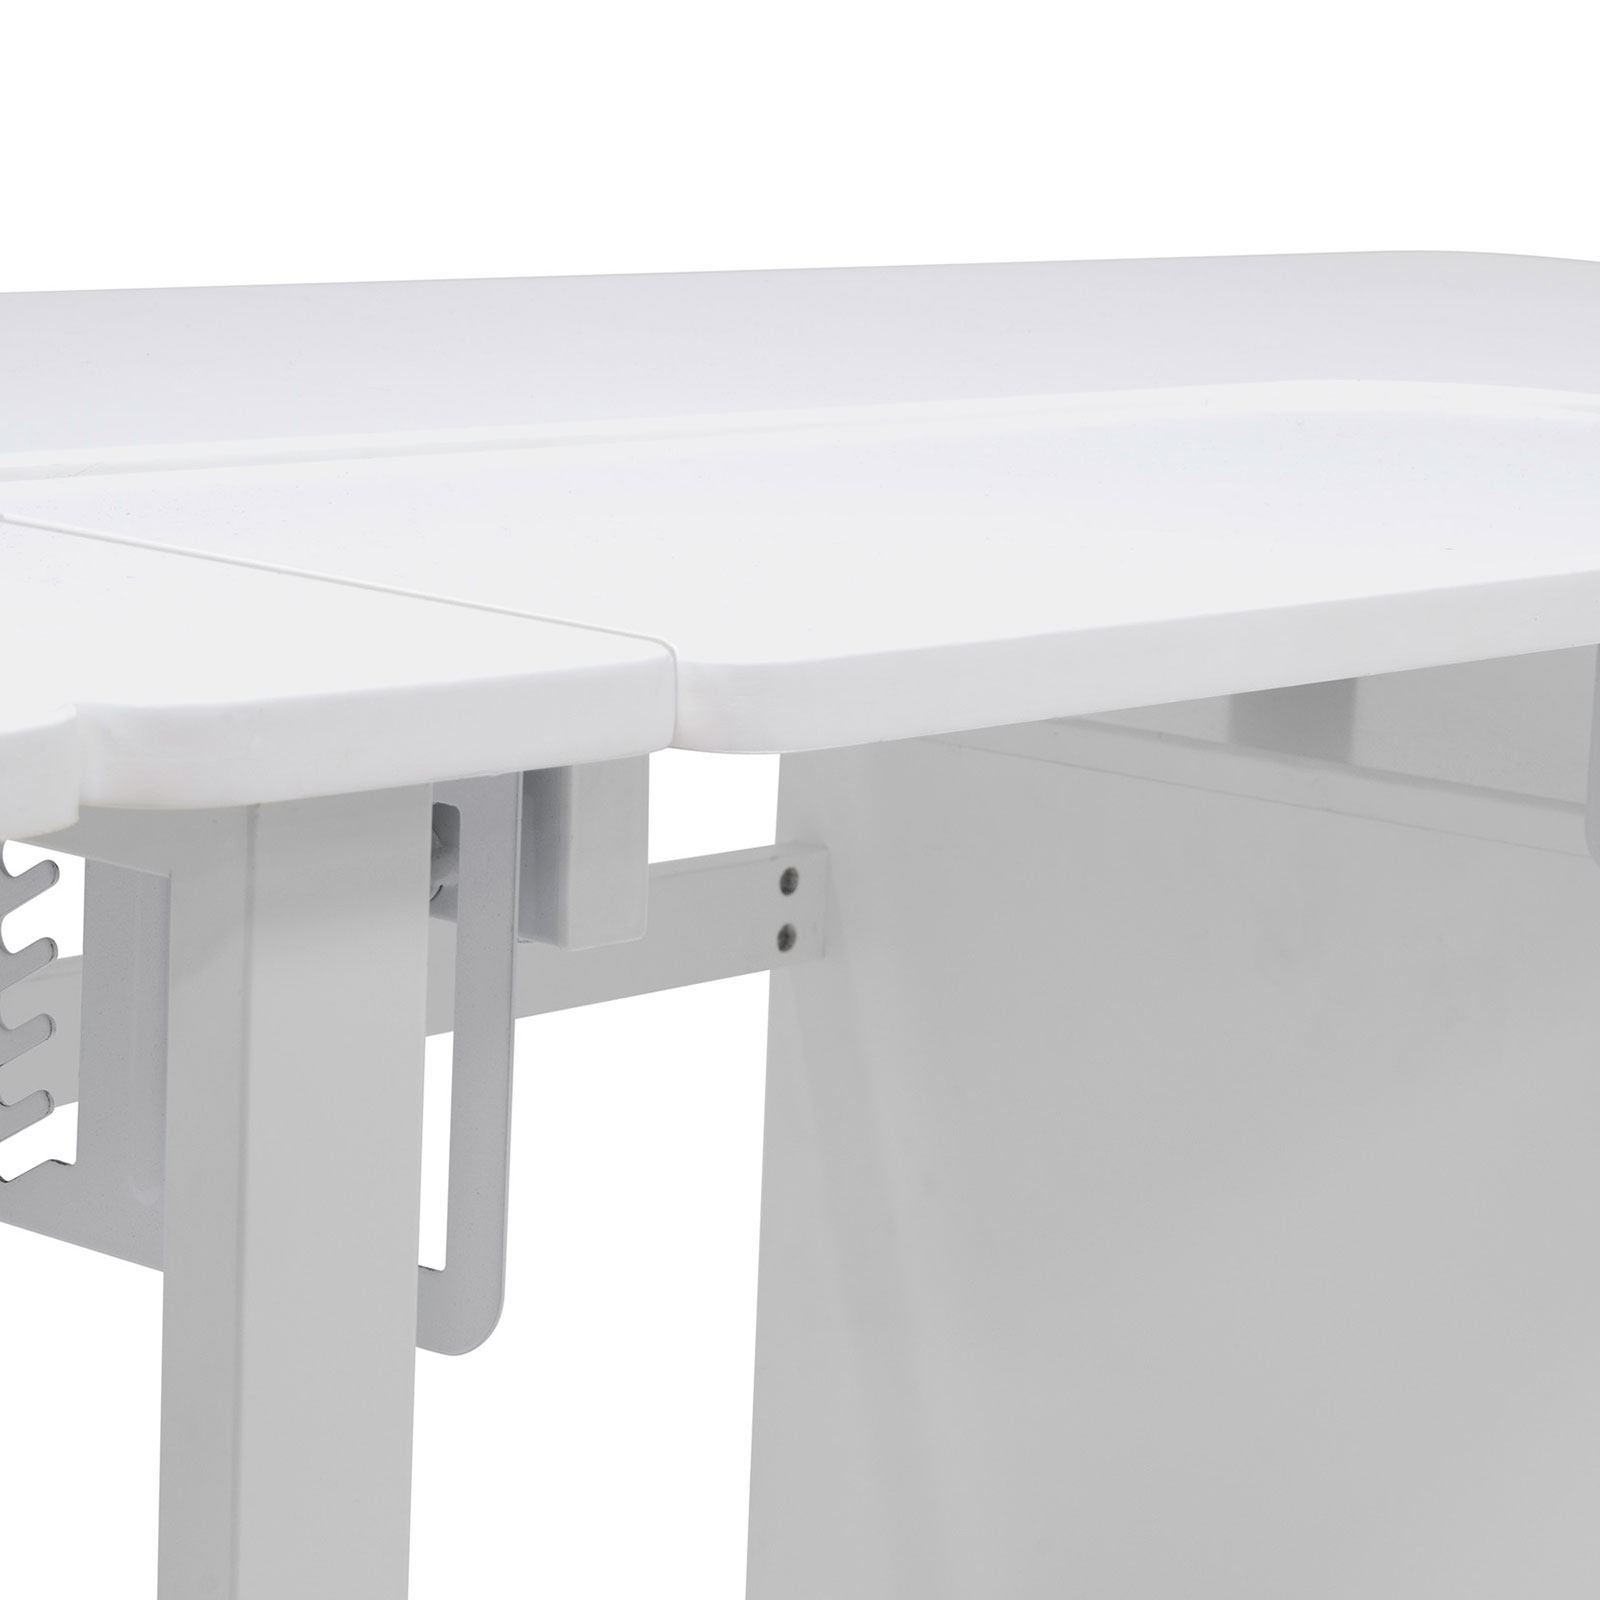 13397-Pro-Line-Sewing-Table-detail2b